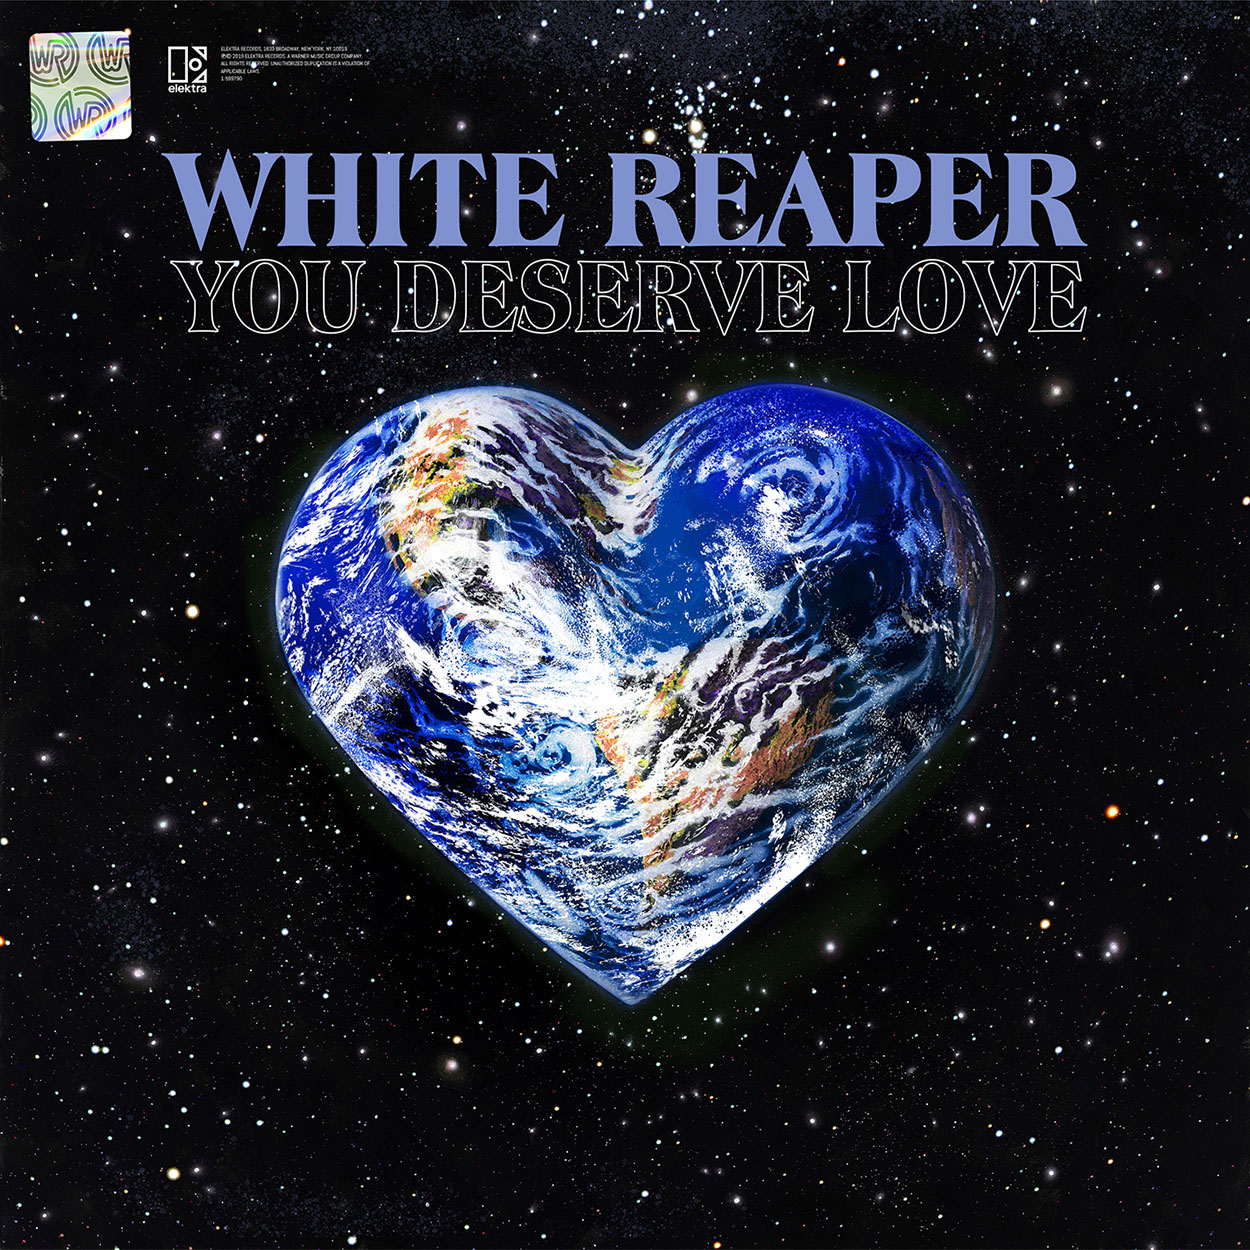 White Reaper You Deserve Love new album art cover